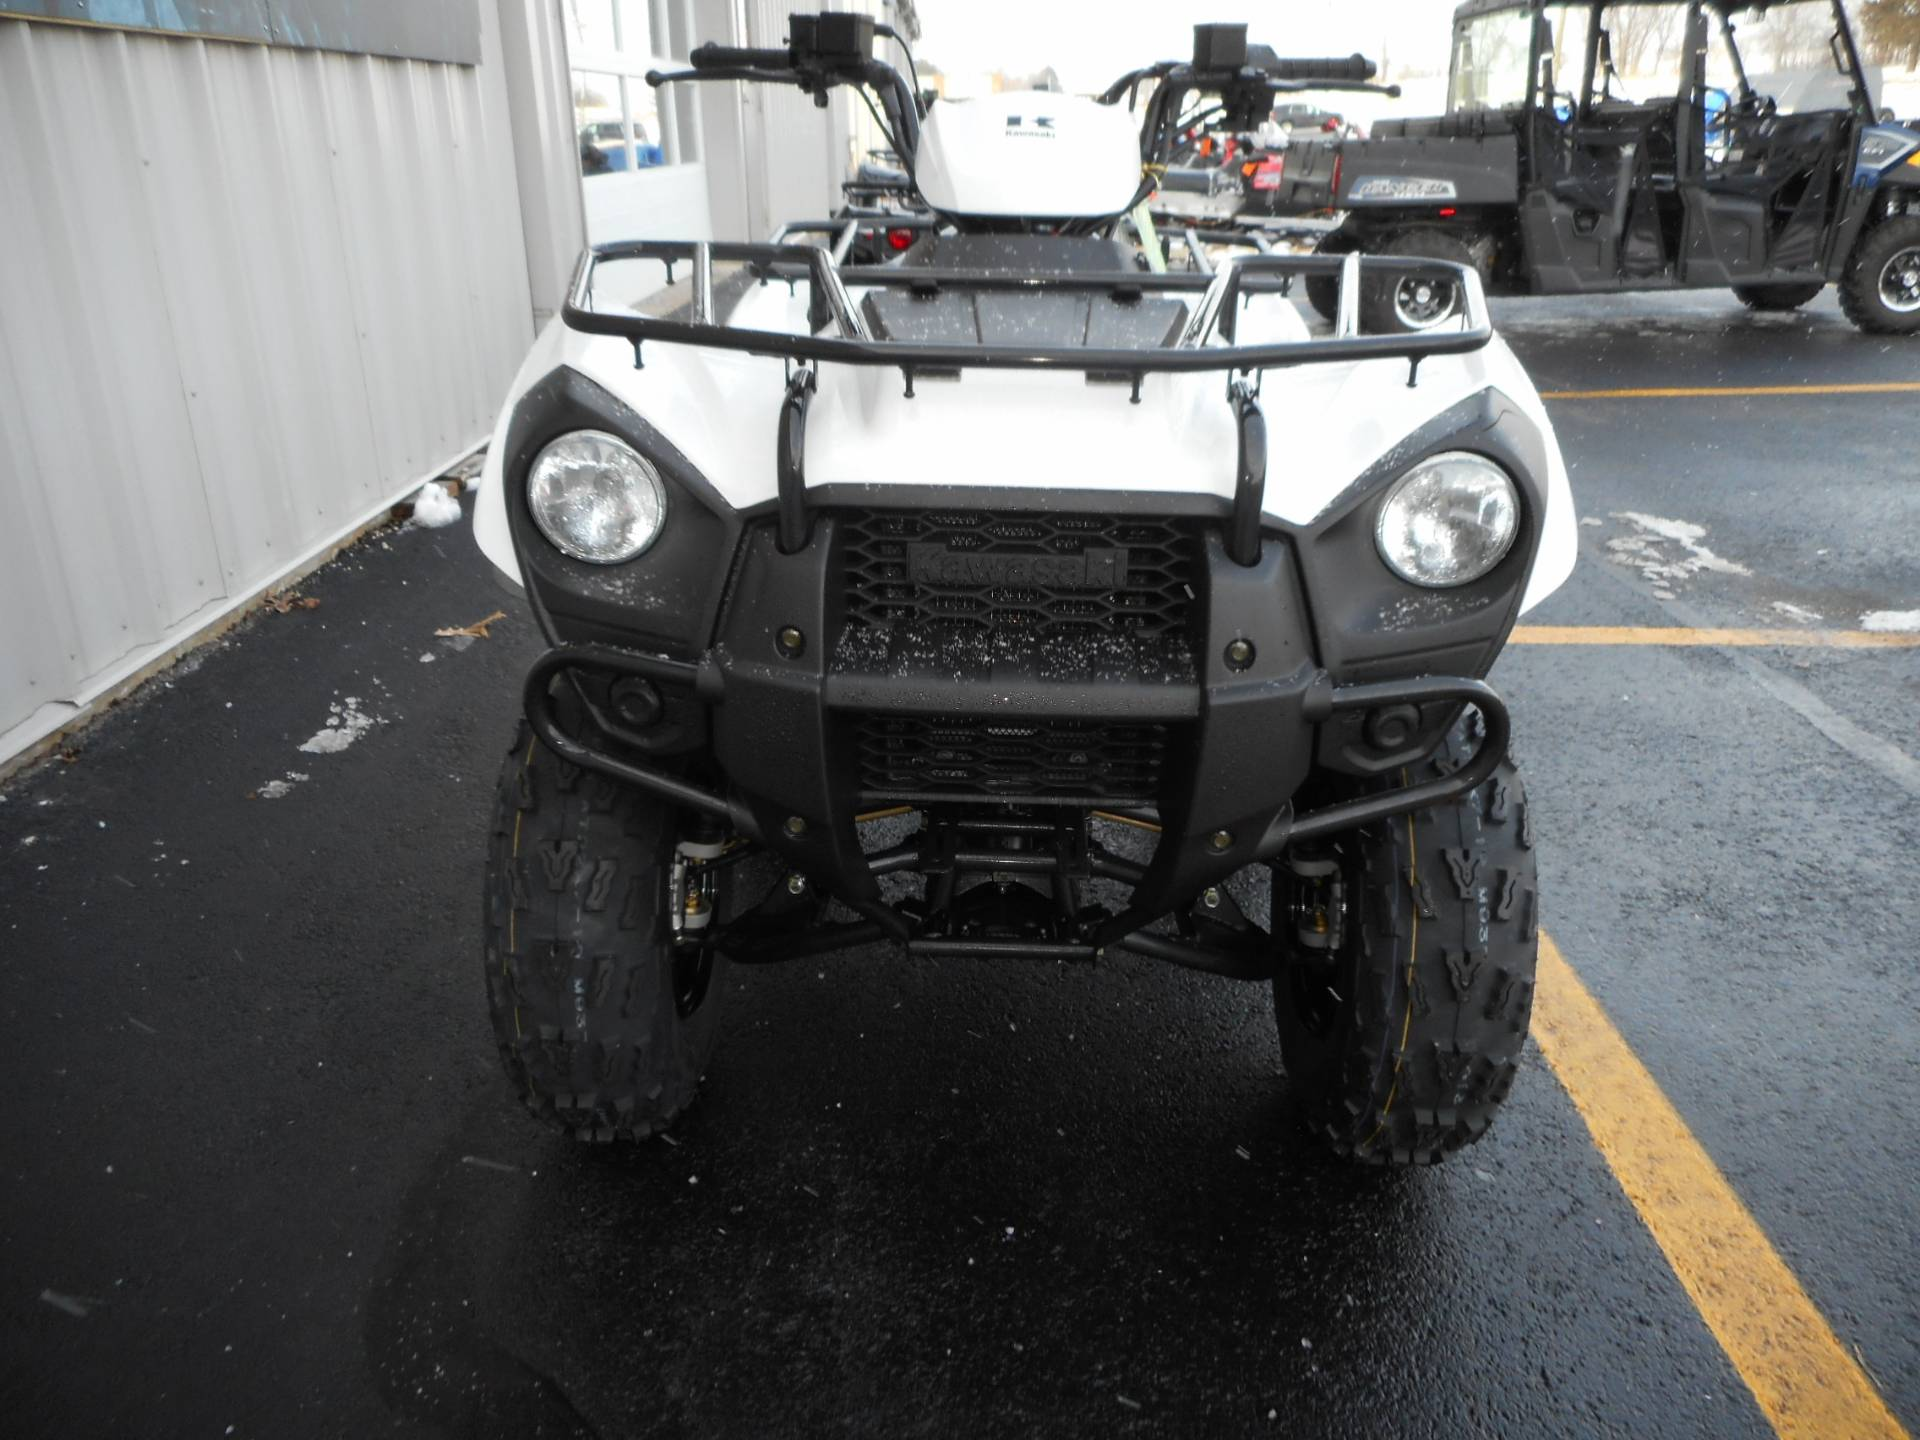 2018 Kawasaki Brute Force 300 in Belvidere, Illinois - Photo 4